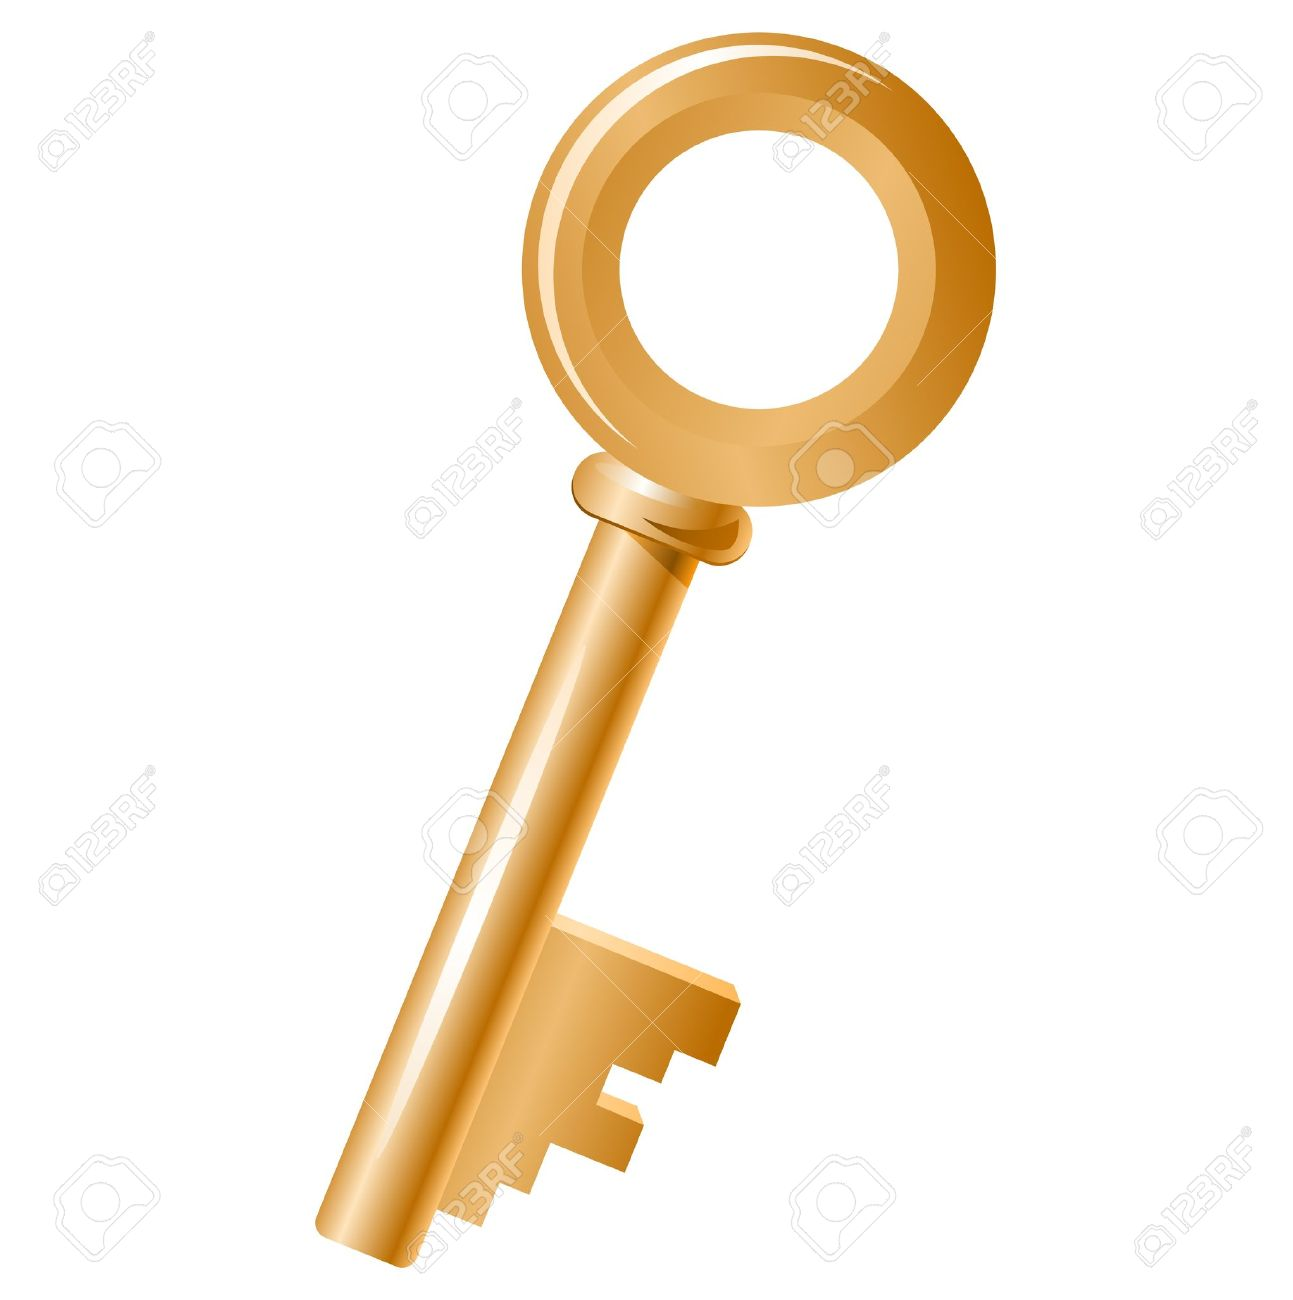 With golden key 3d rendering plan concept with golden key 3d rendering - Golden Key Golden Key Isolated Illustration